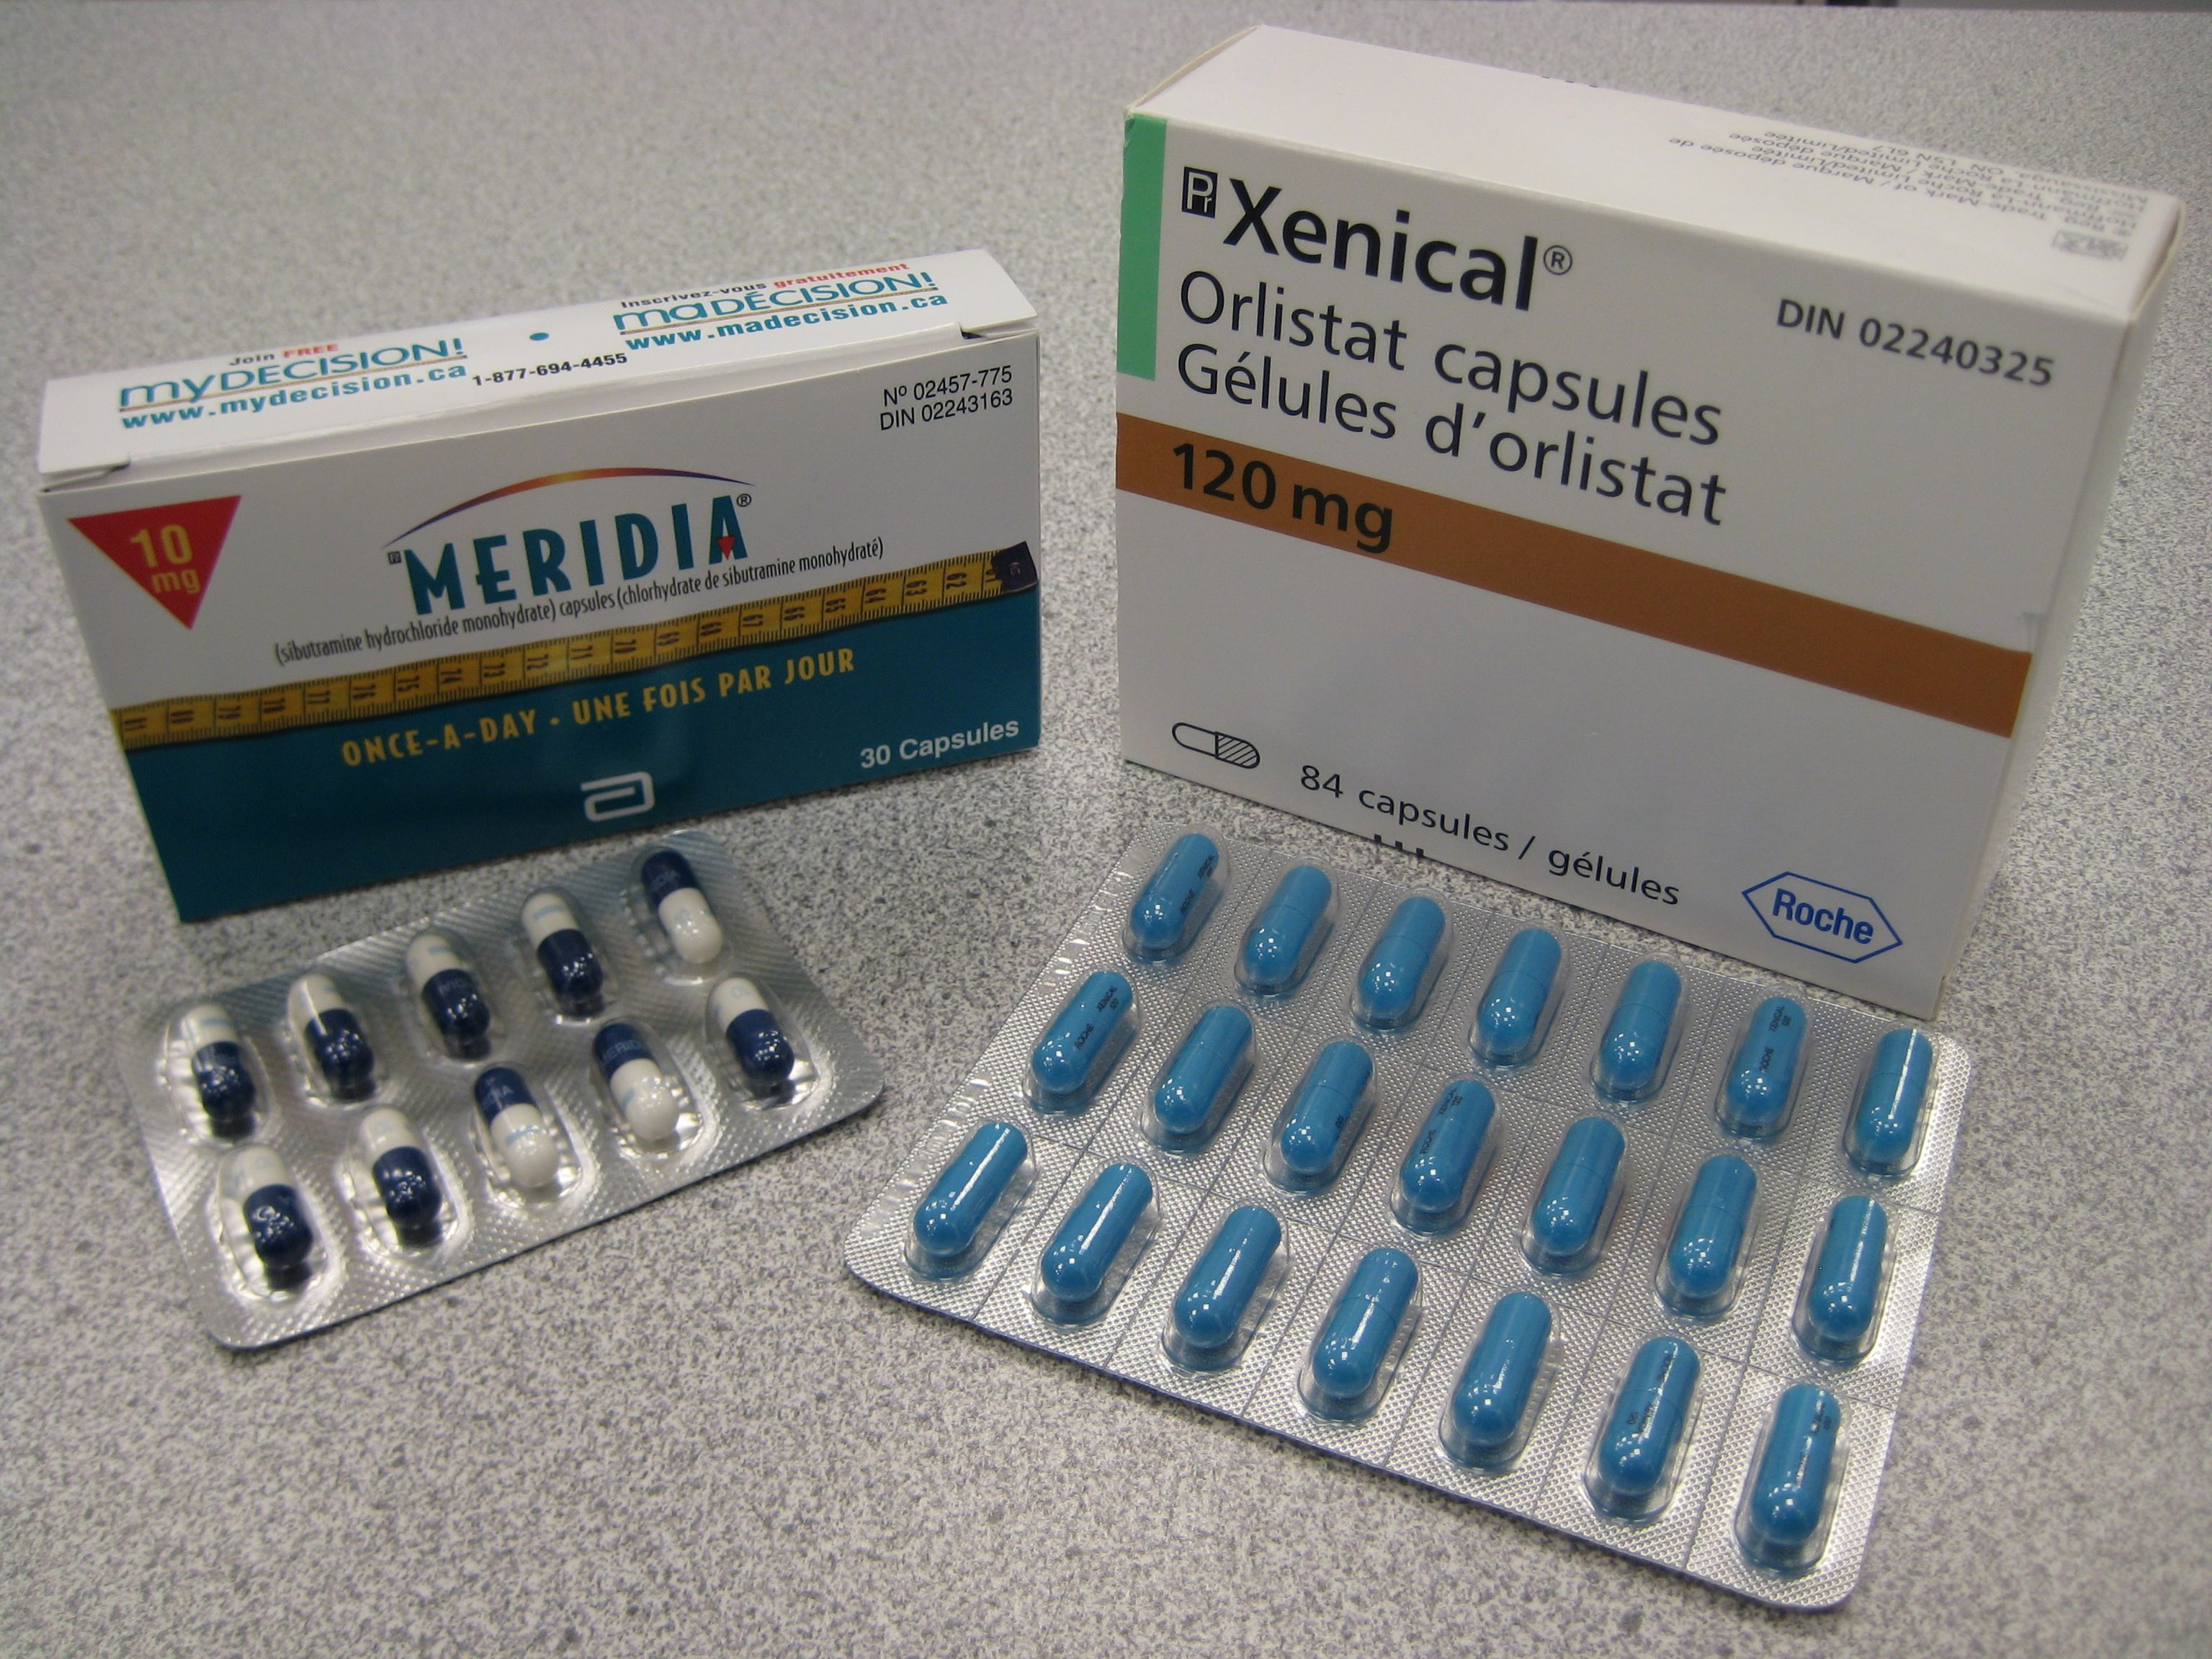 Anti-obesity medication - The complete information and